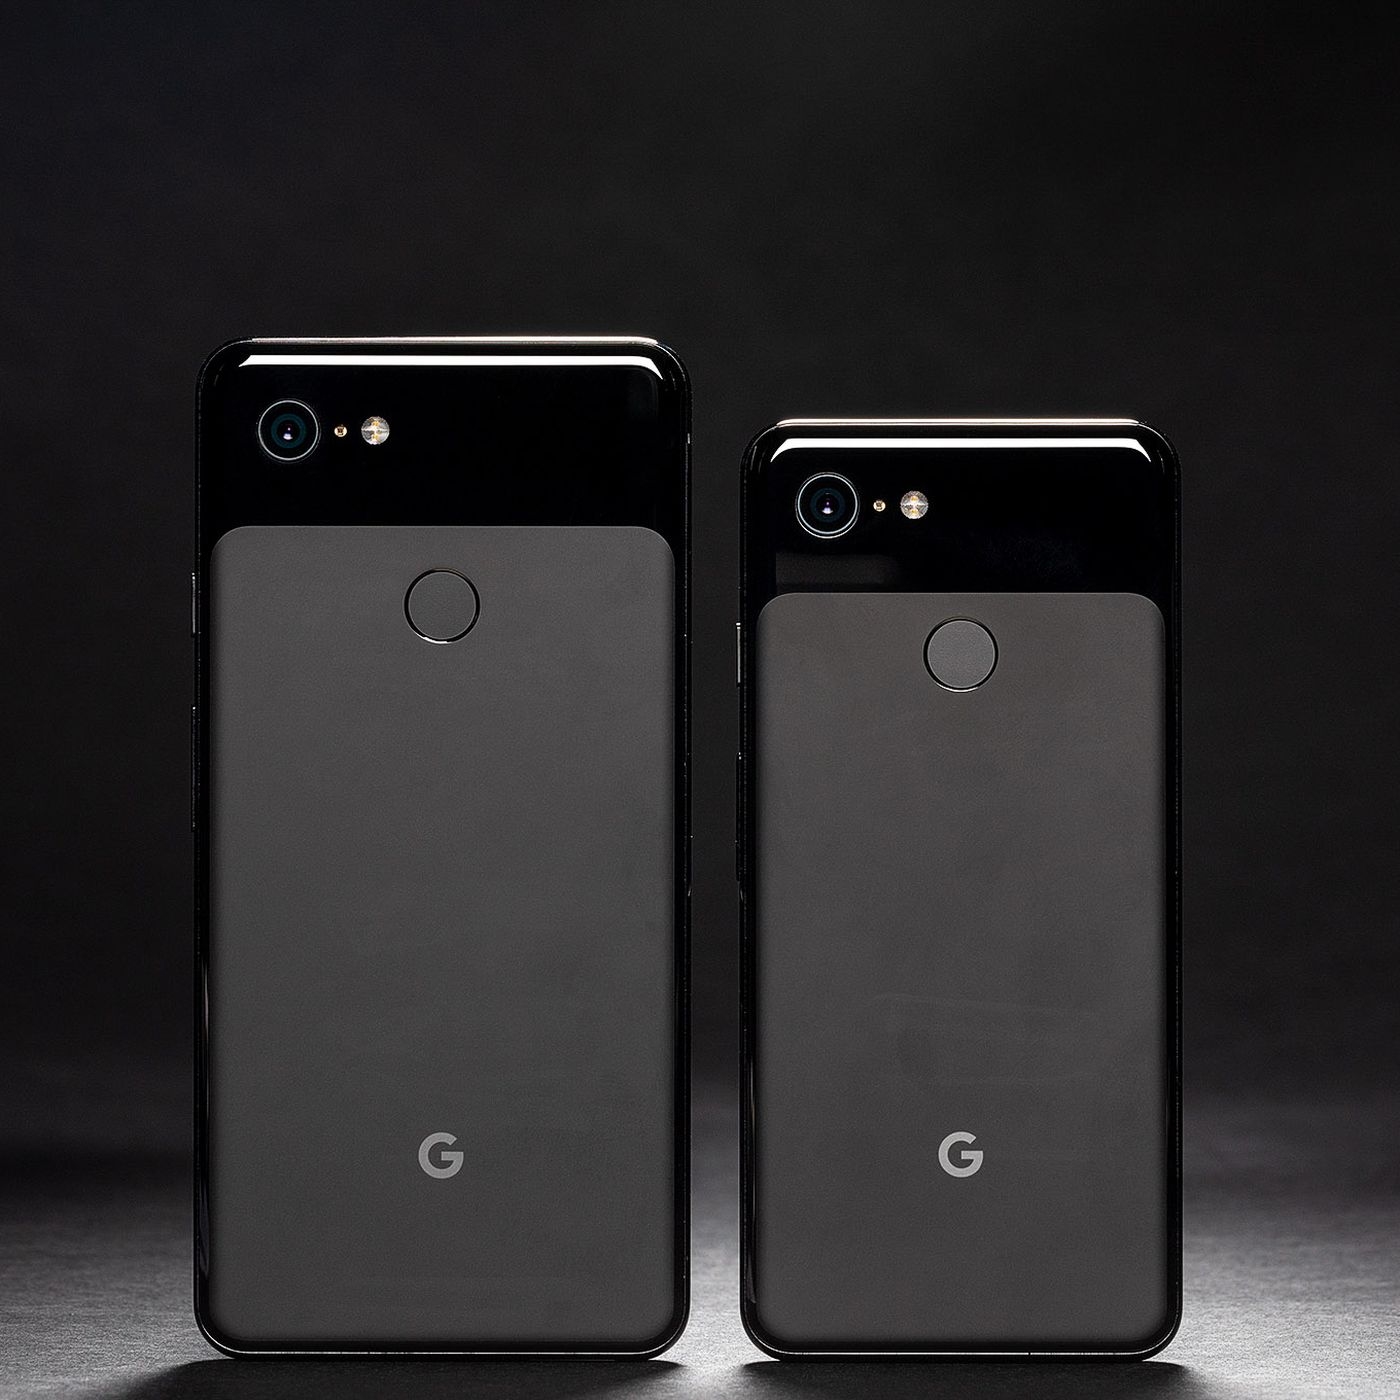 verizon esim activation pixel 3